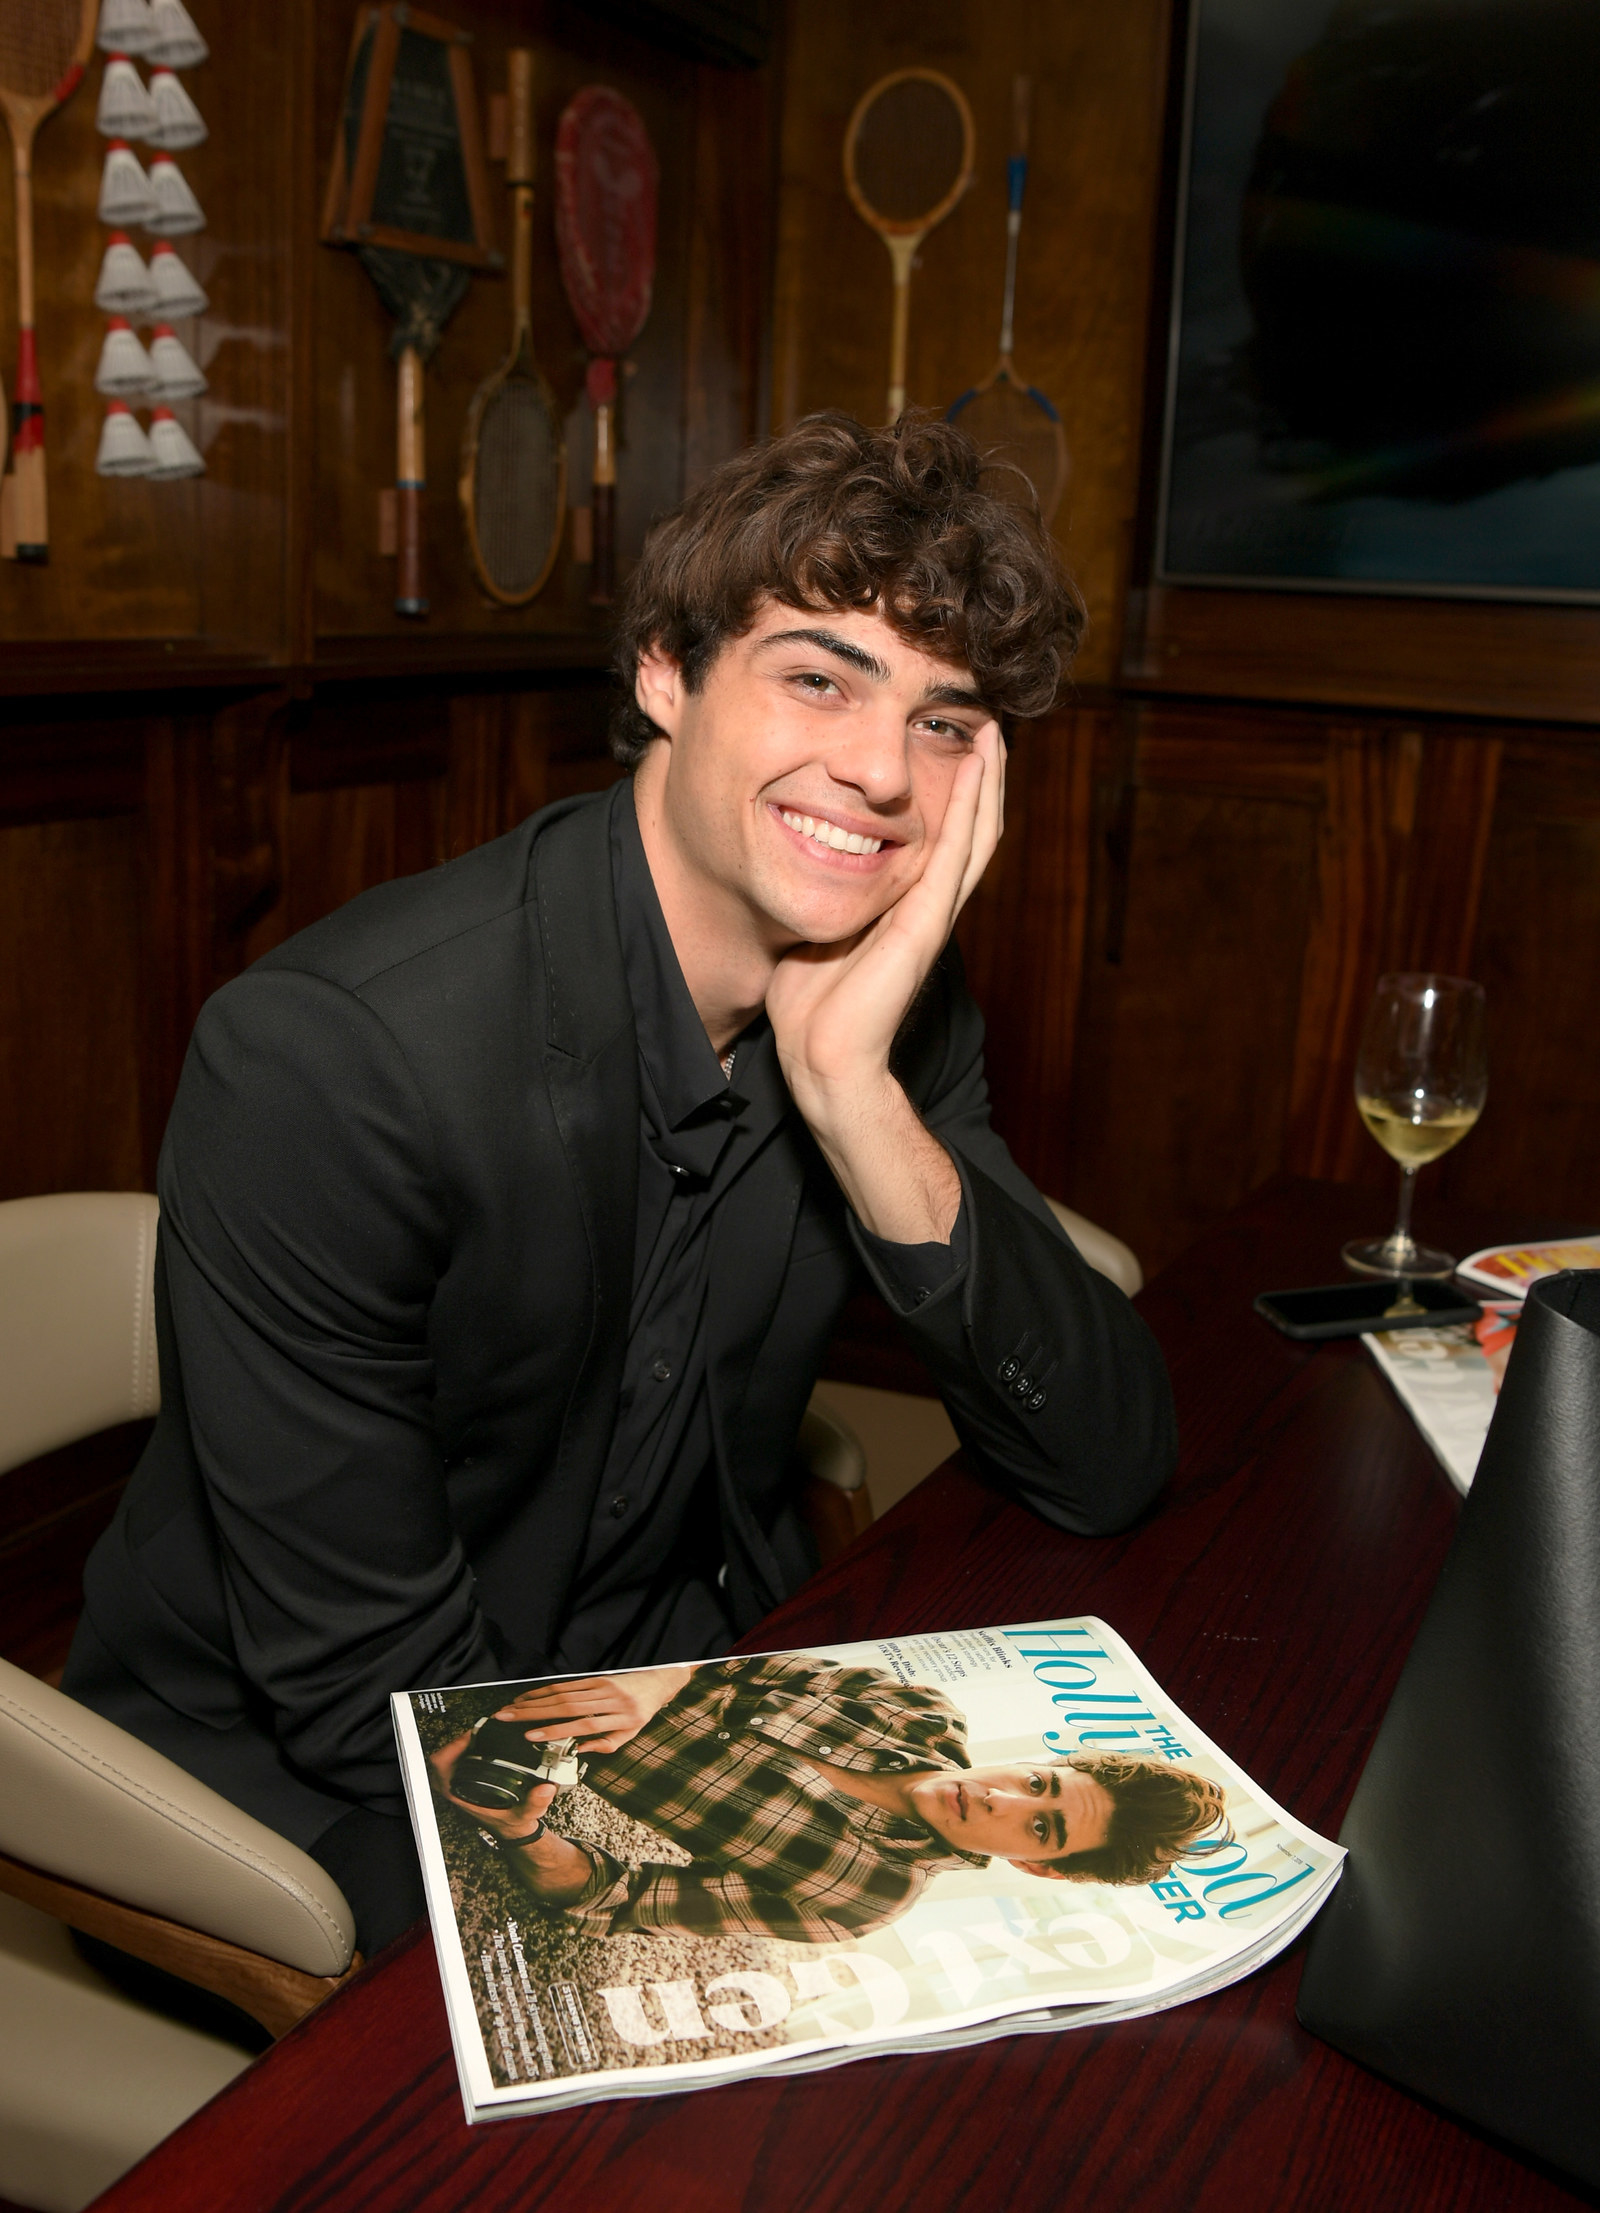 Sorry to the world, but your fave Noah Centineo just got busted.